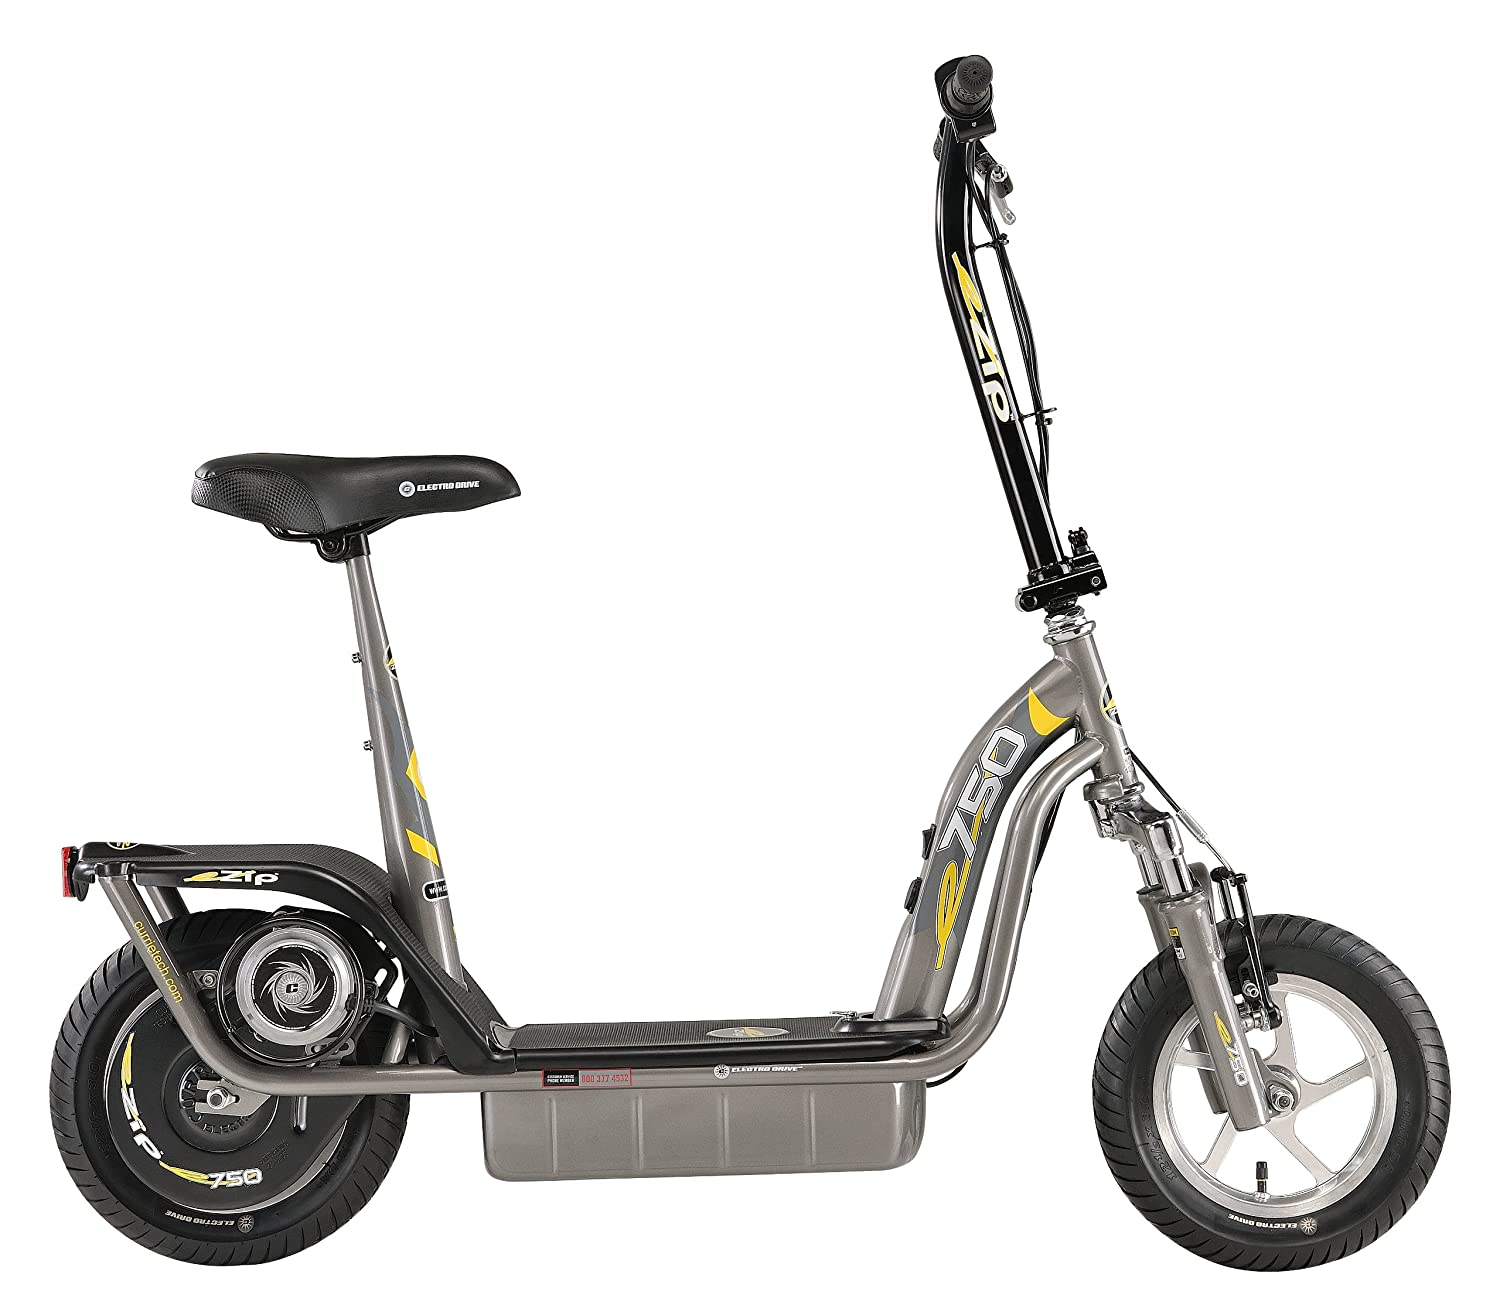 Amazon.com: Tecnologías de Currie e-Zip E750 Scooter ...